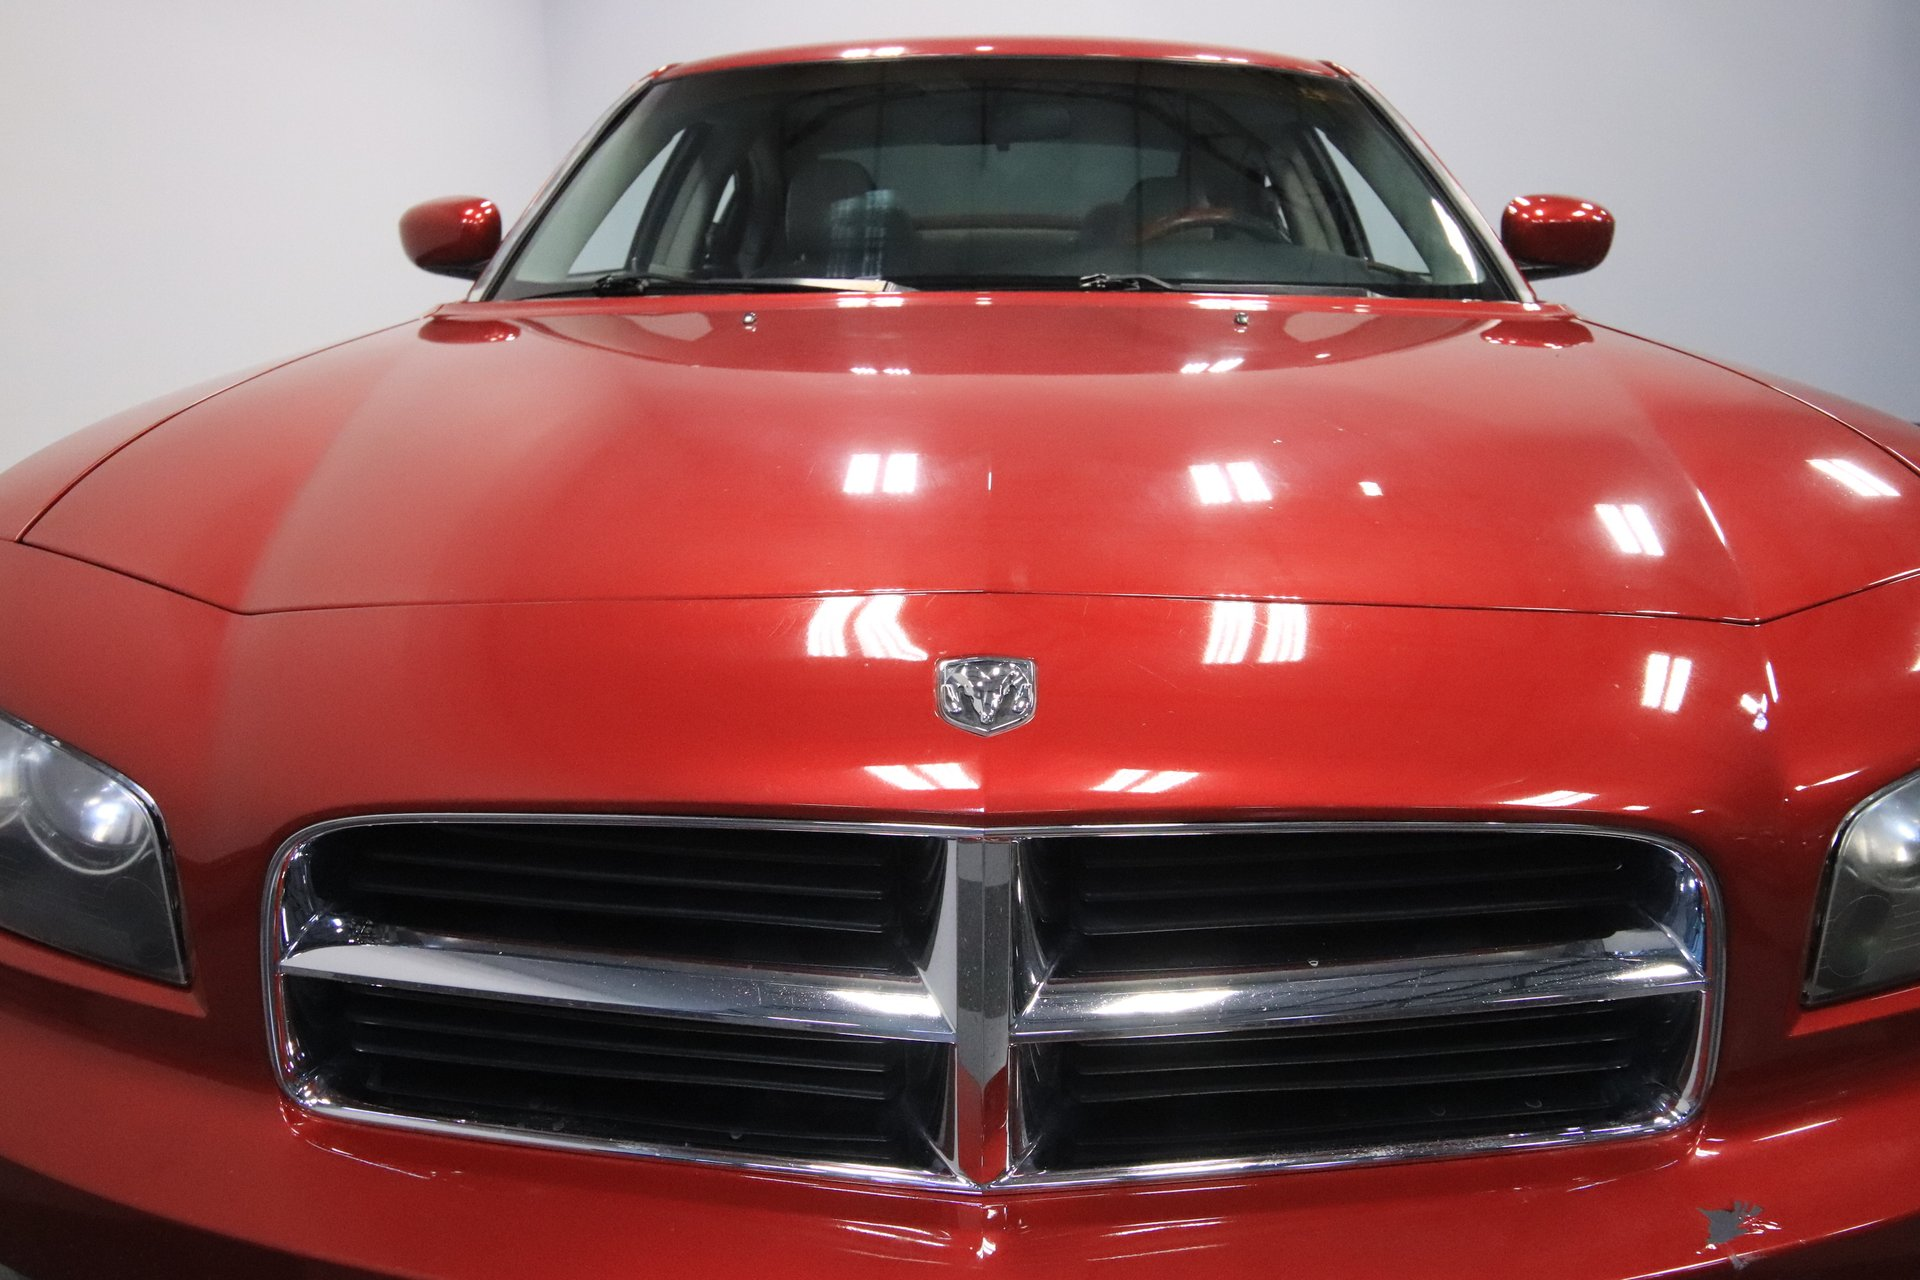 2006 Dodge Charger R/T for sale #98084 | MCG